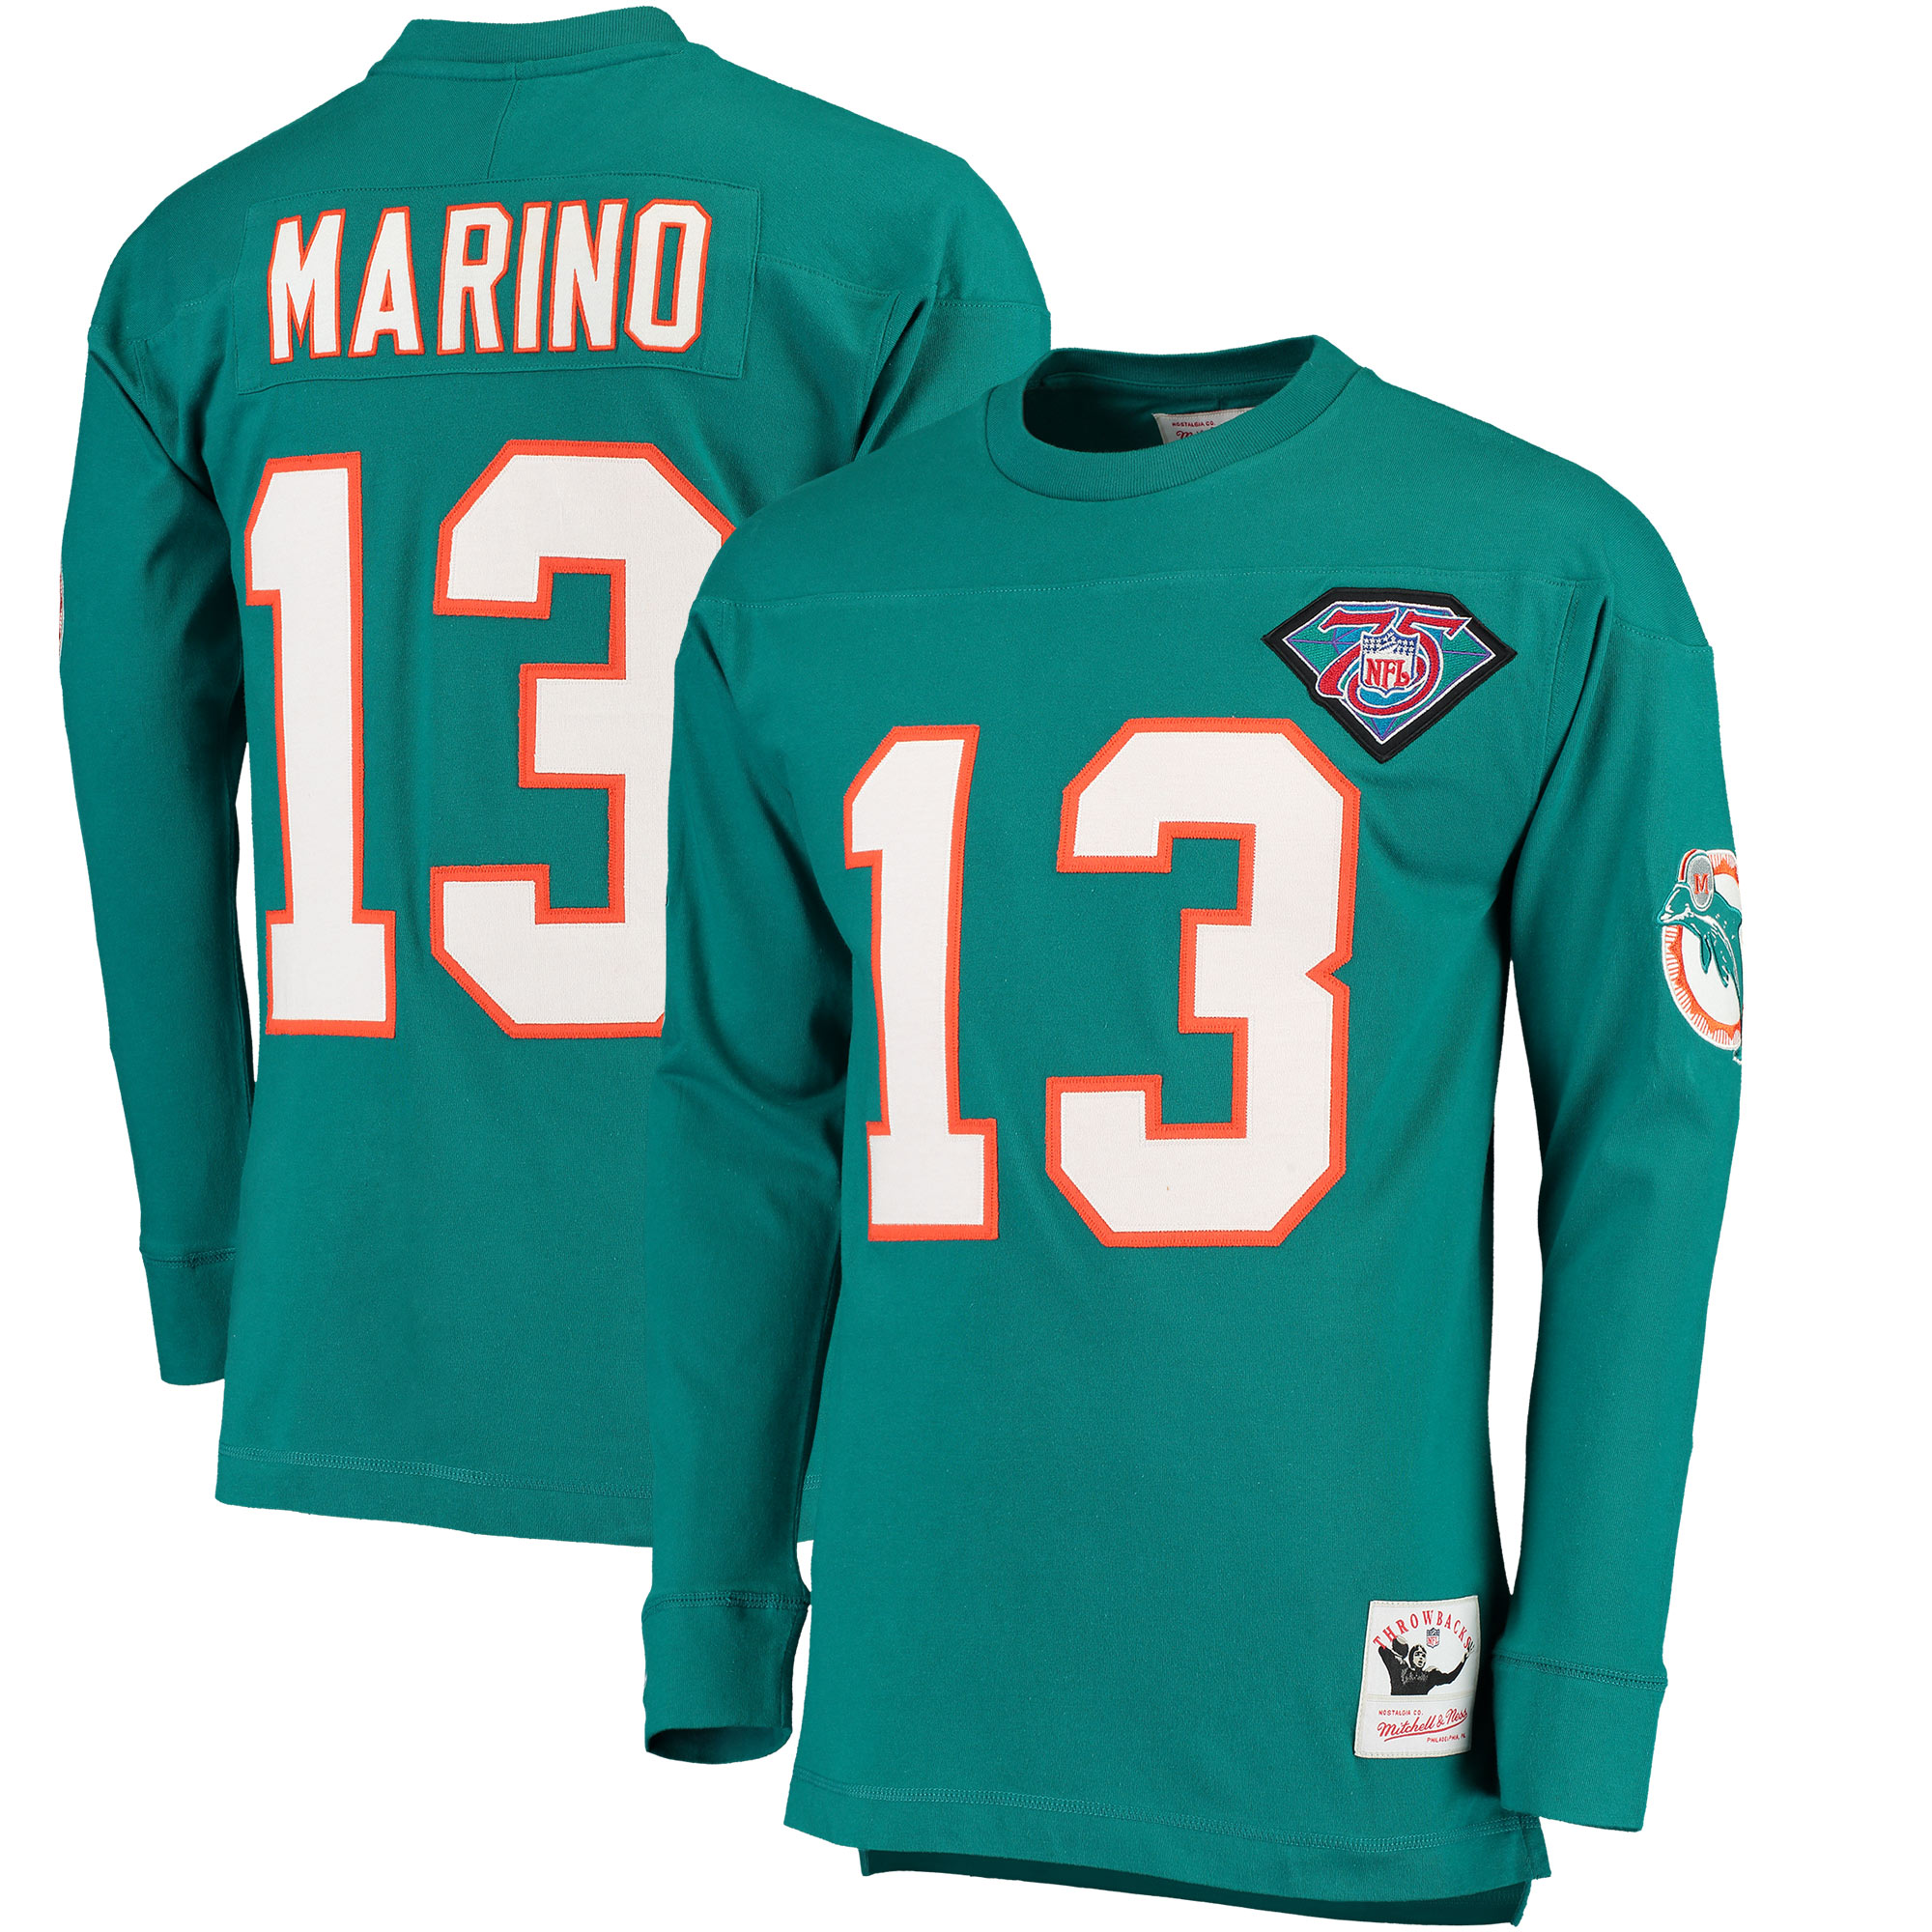 Dan Marino Miami Dolphins Mitchell & Ness Retired Player Name & Number Long Sleeve Top - Aqua